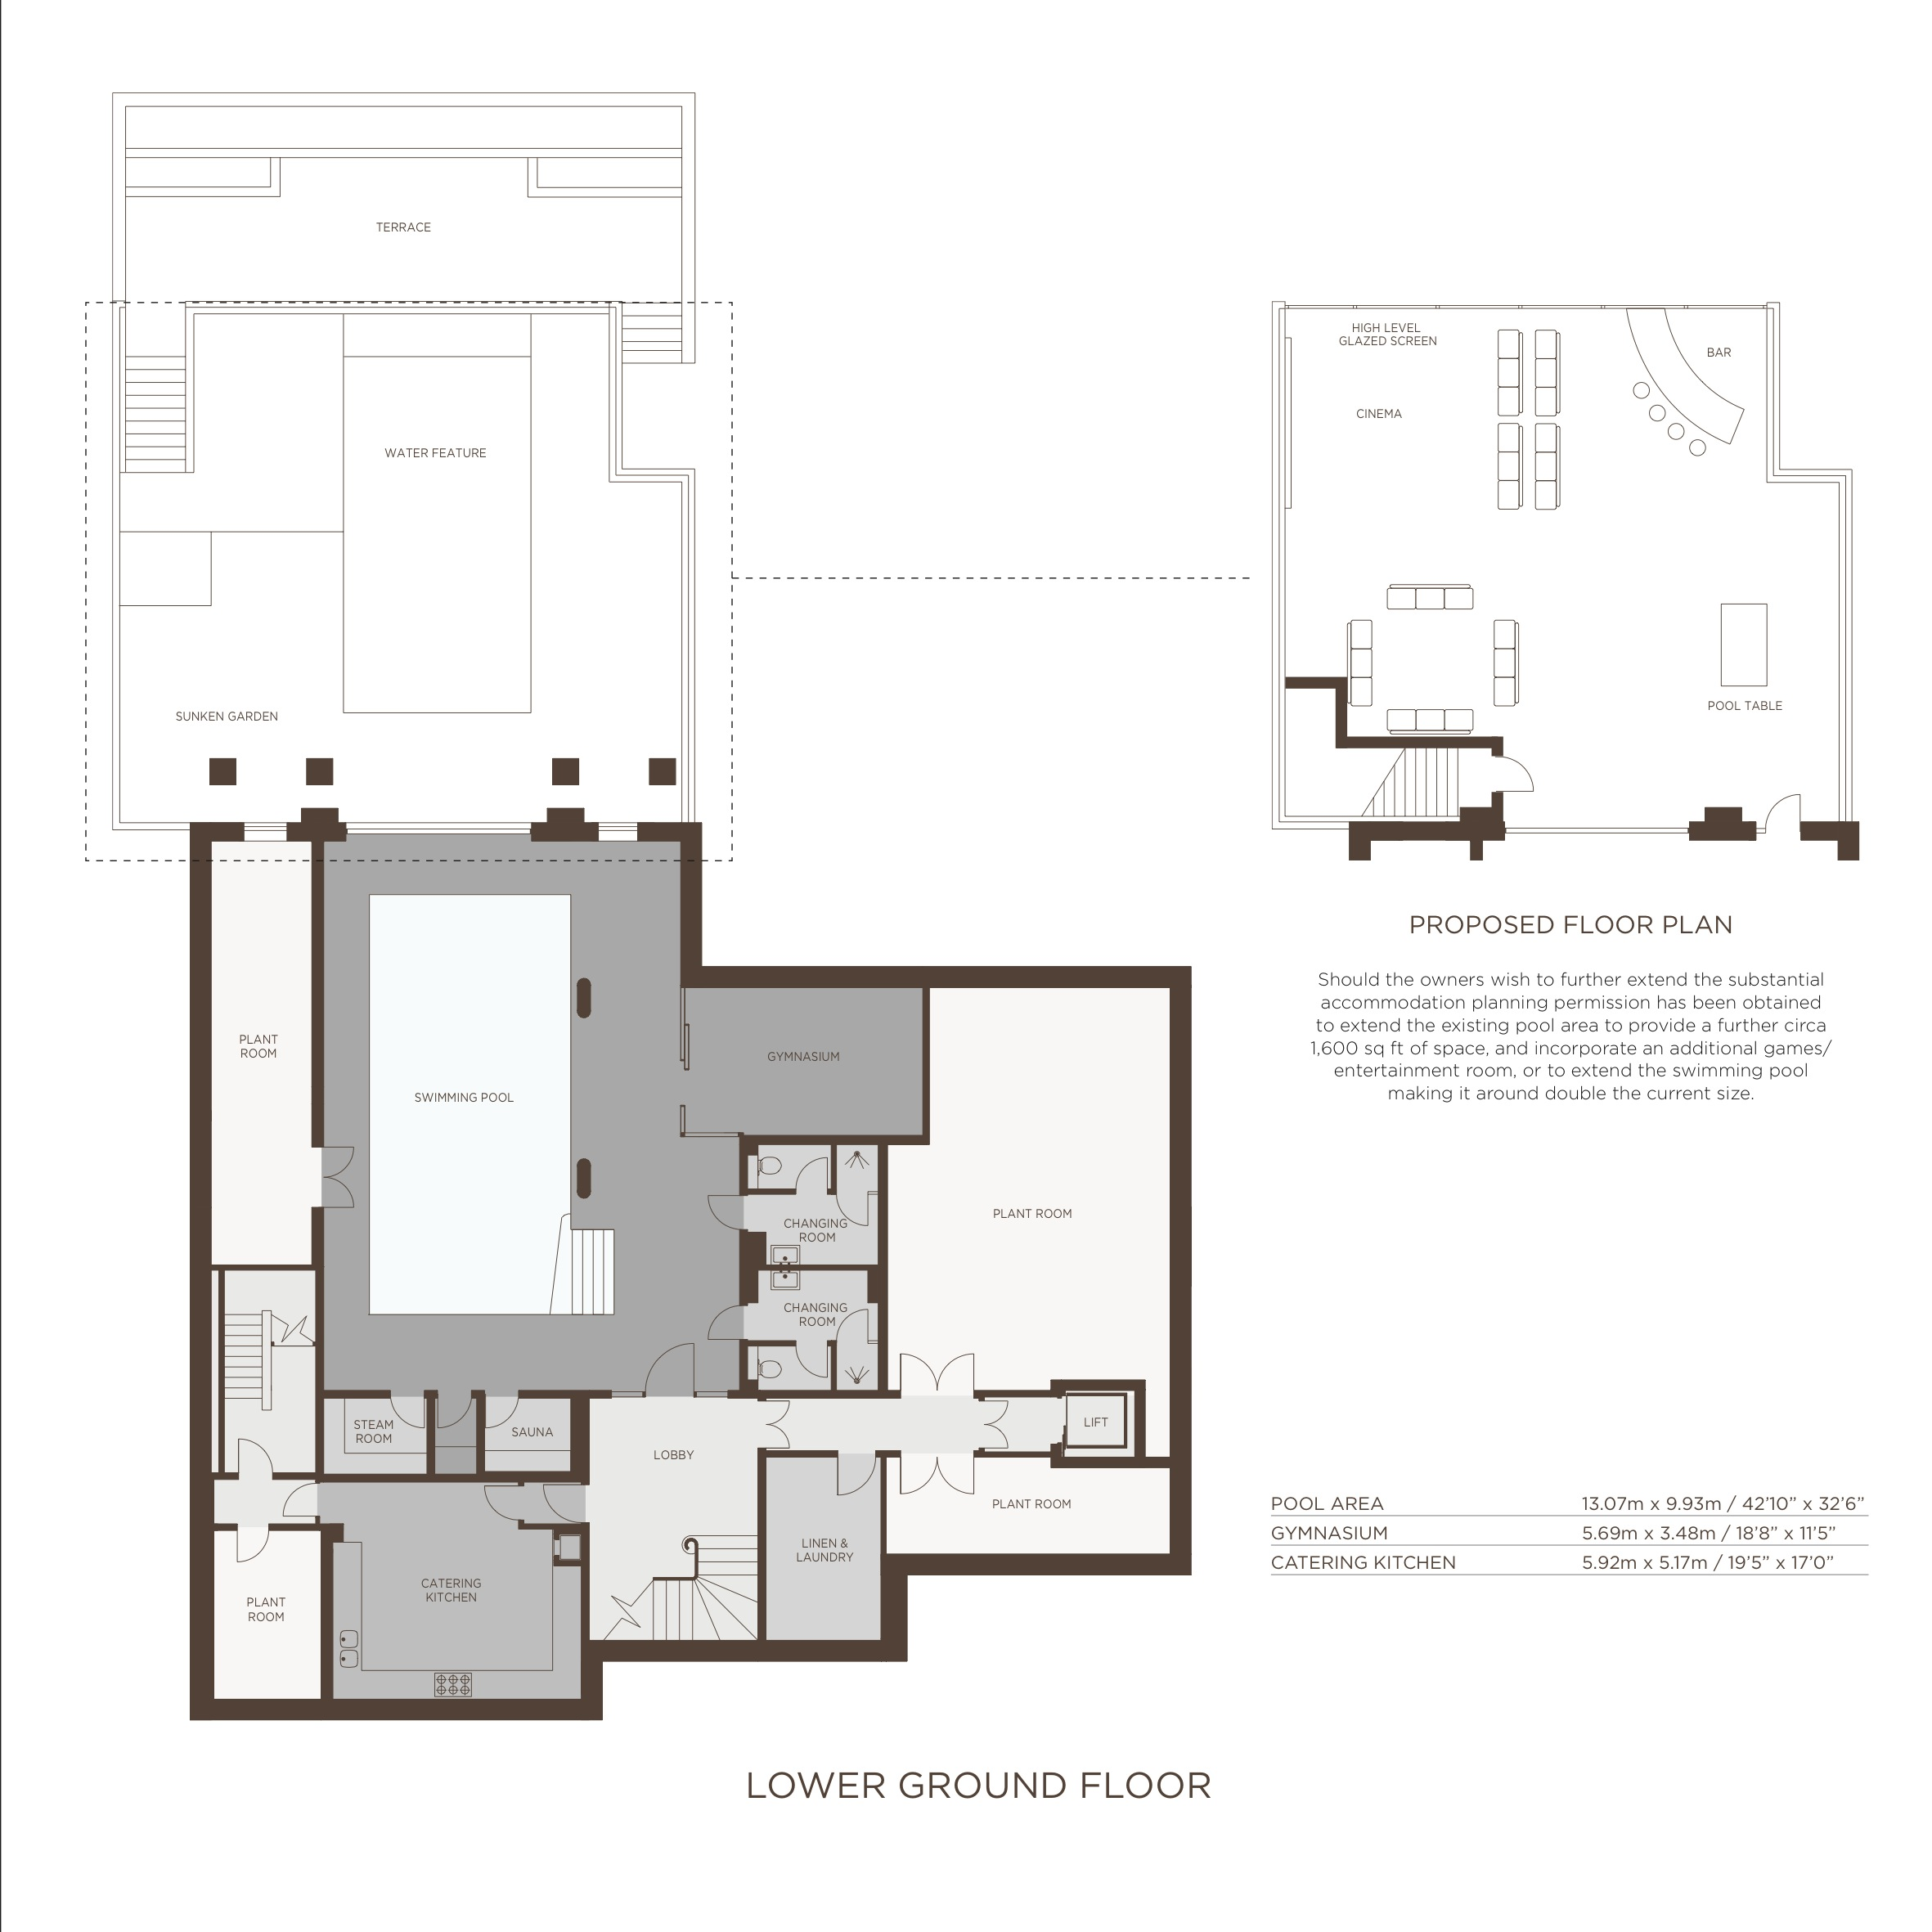 Jersey House Floor Plans, The Bishops Avenue - Barnet London